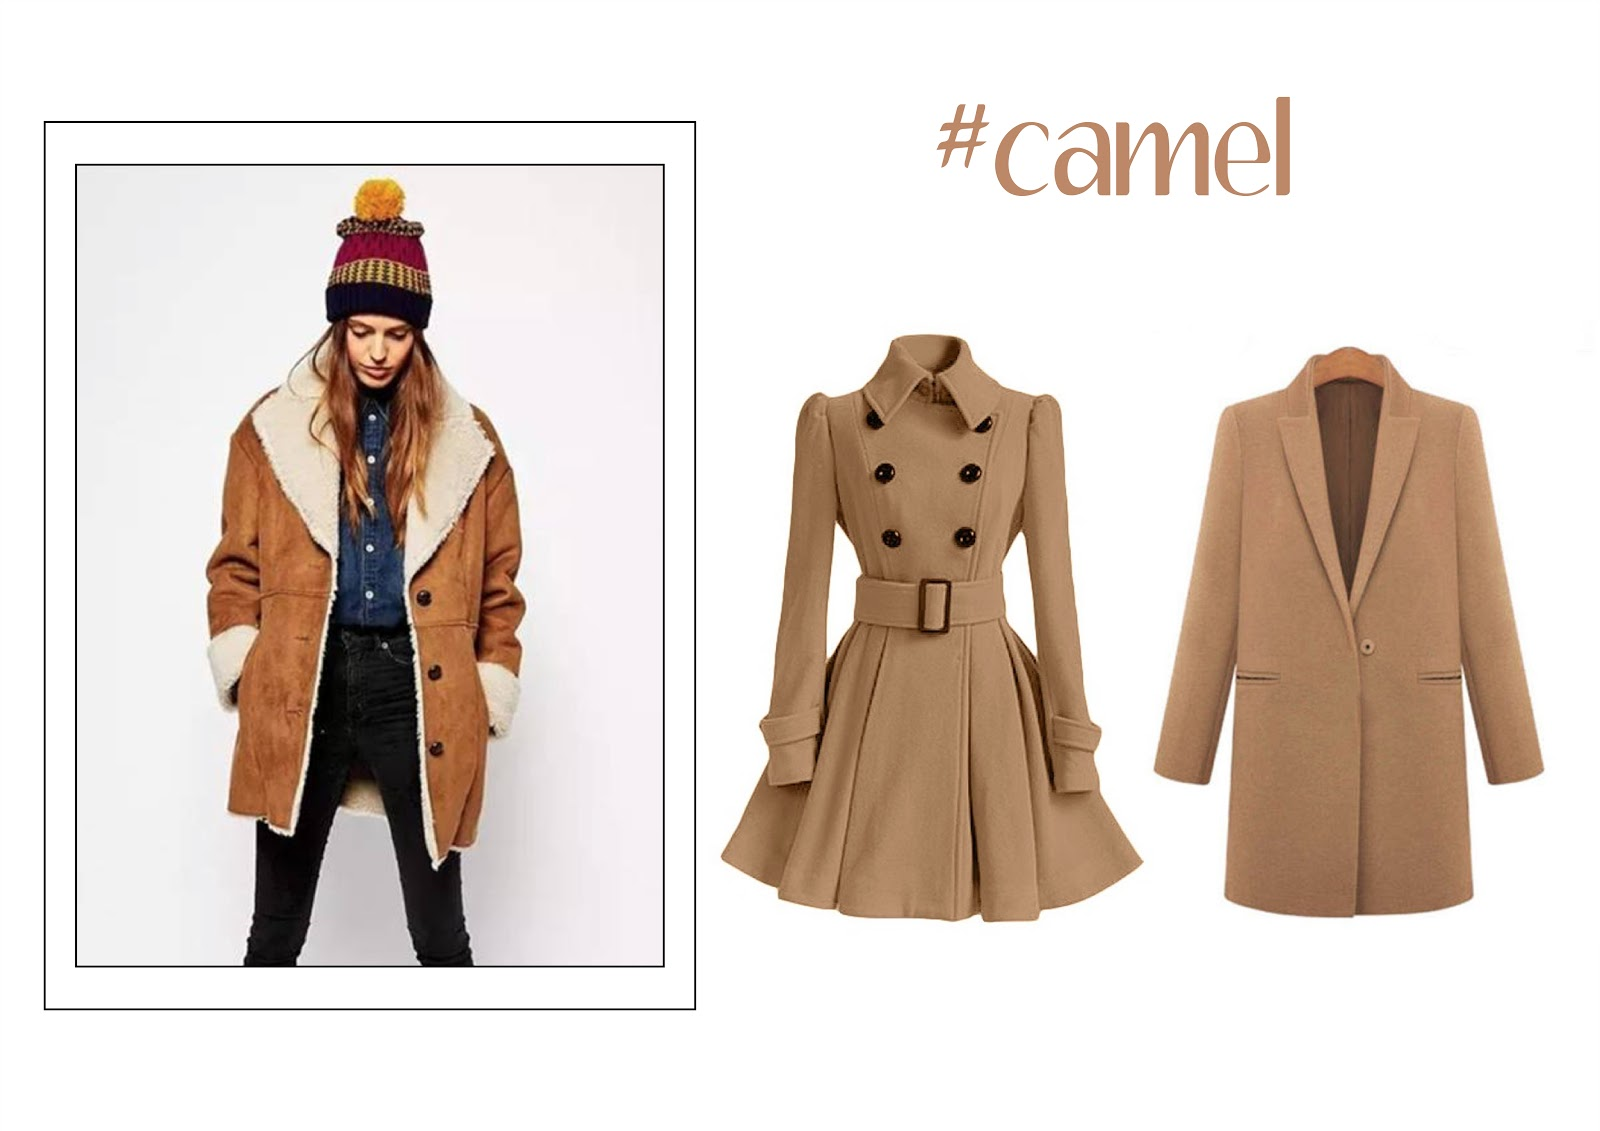 saldi sales shopping guide banged coat cappotti grey pastels camel burgundy white pastello fur trend glamour tendenza inverno 2016 fashion blogger pescara girl italy italia